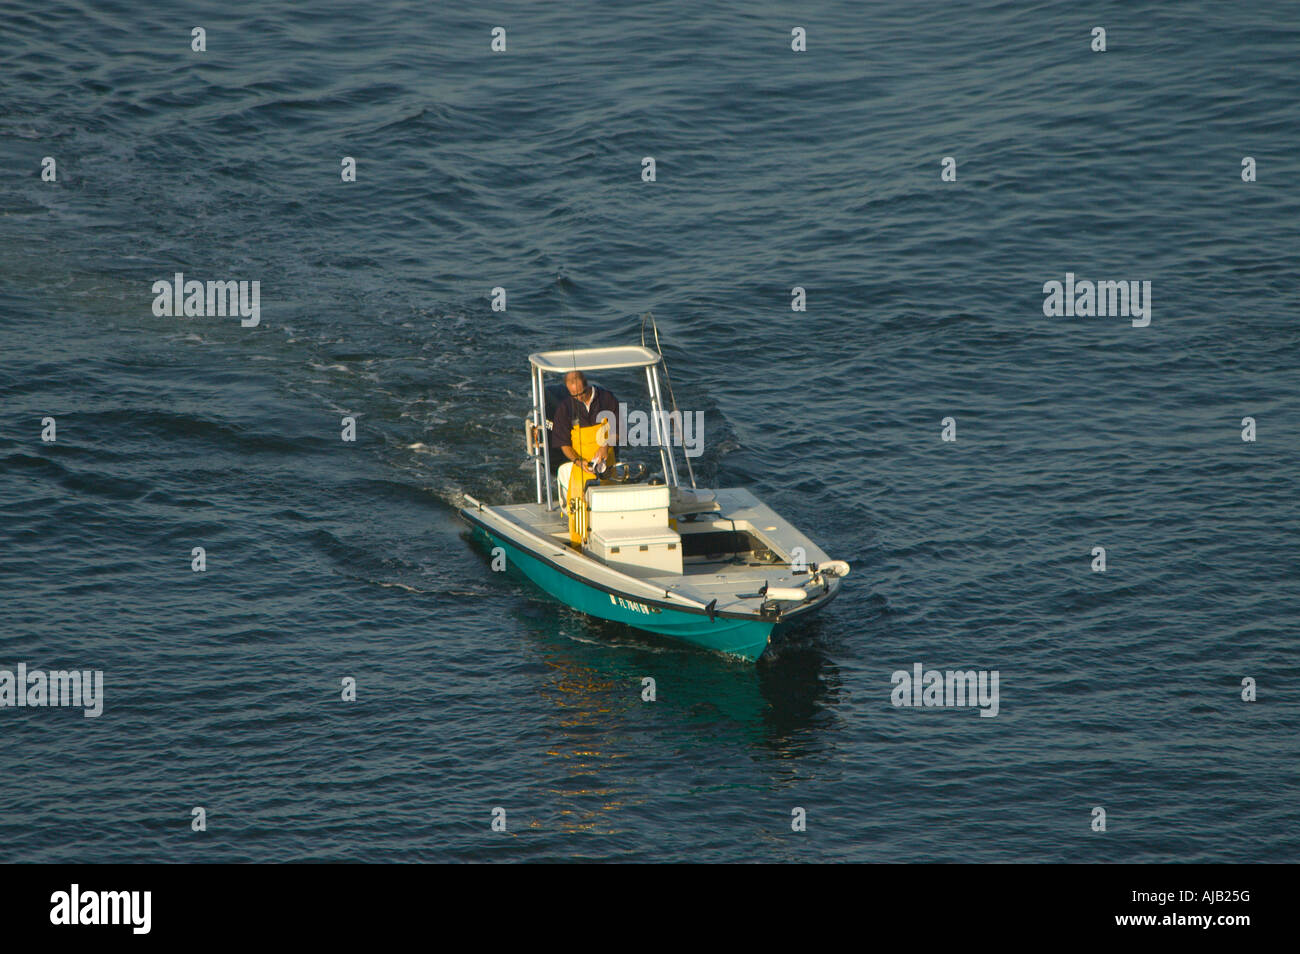 Boating power outboard motor boat commercial fisherman cruises in calm flat  water, yellow waders, casting platform